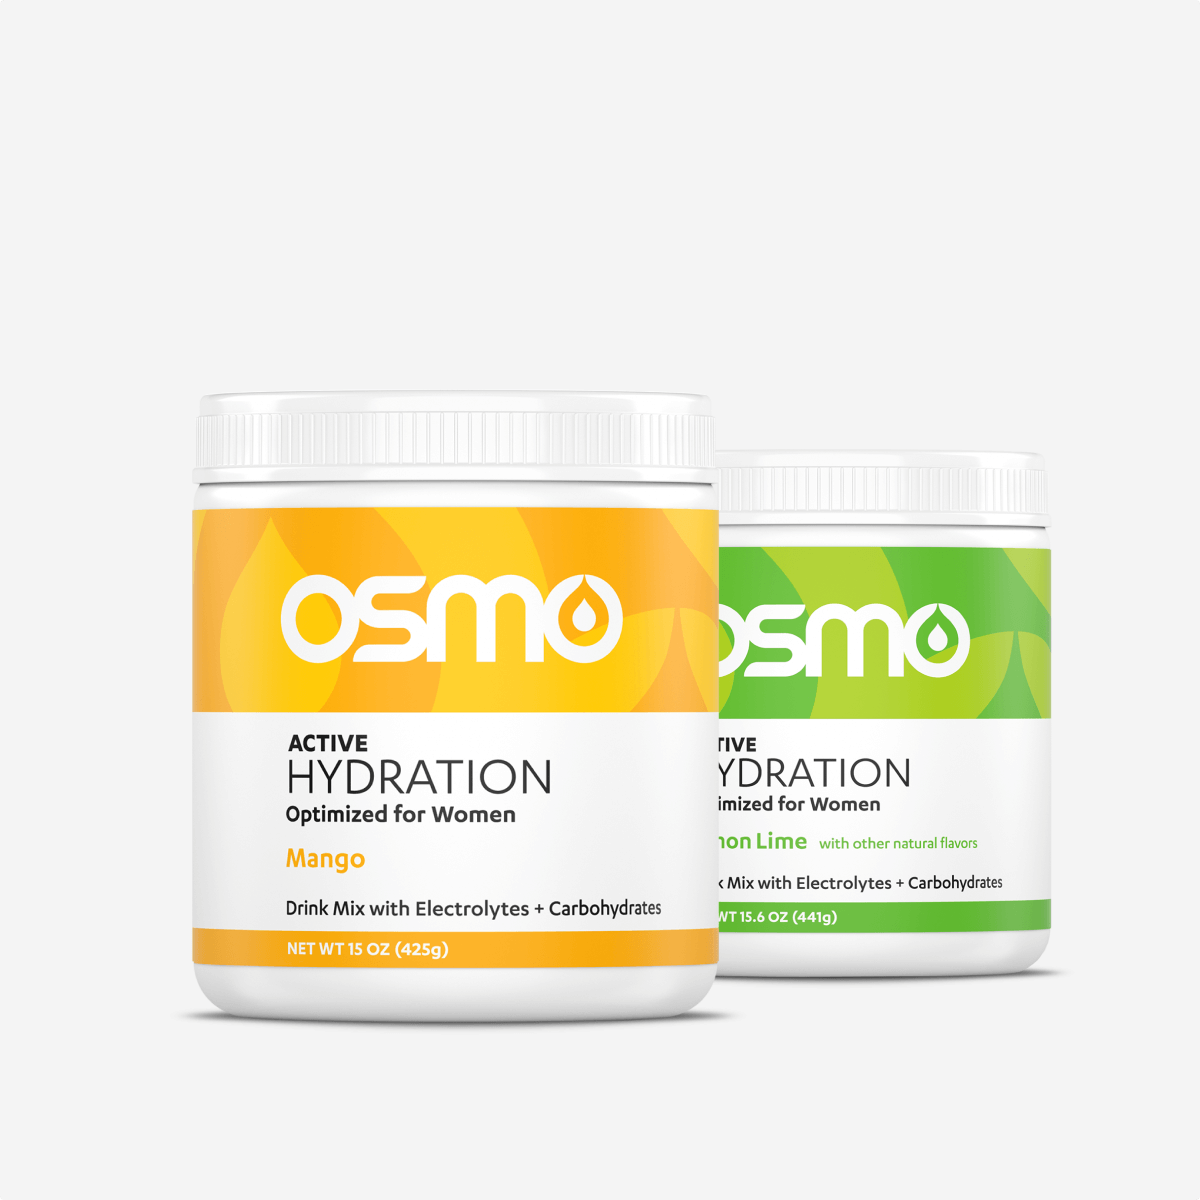 The packaging for Osmo's women's Active Hydration product with Mango and Lemon Lime flavors.